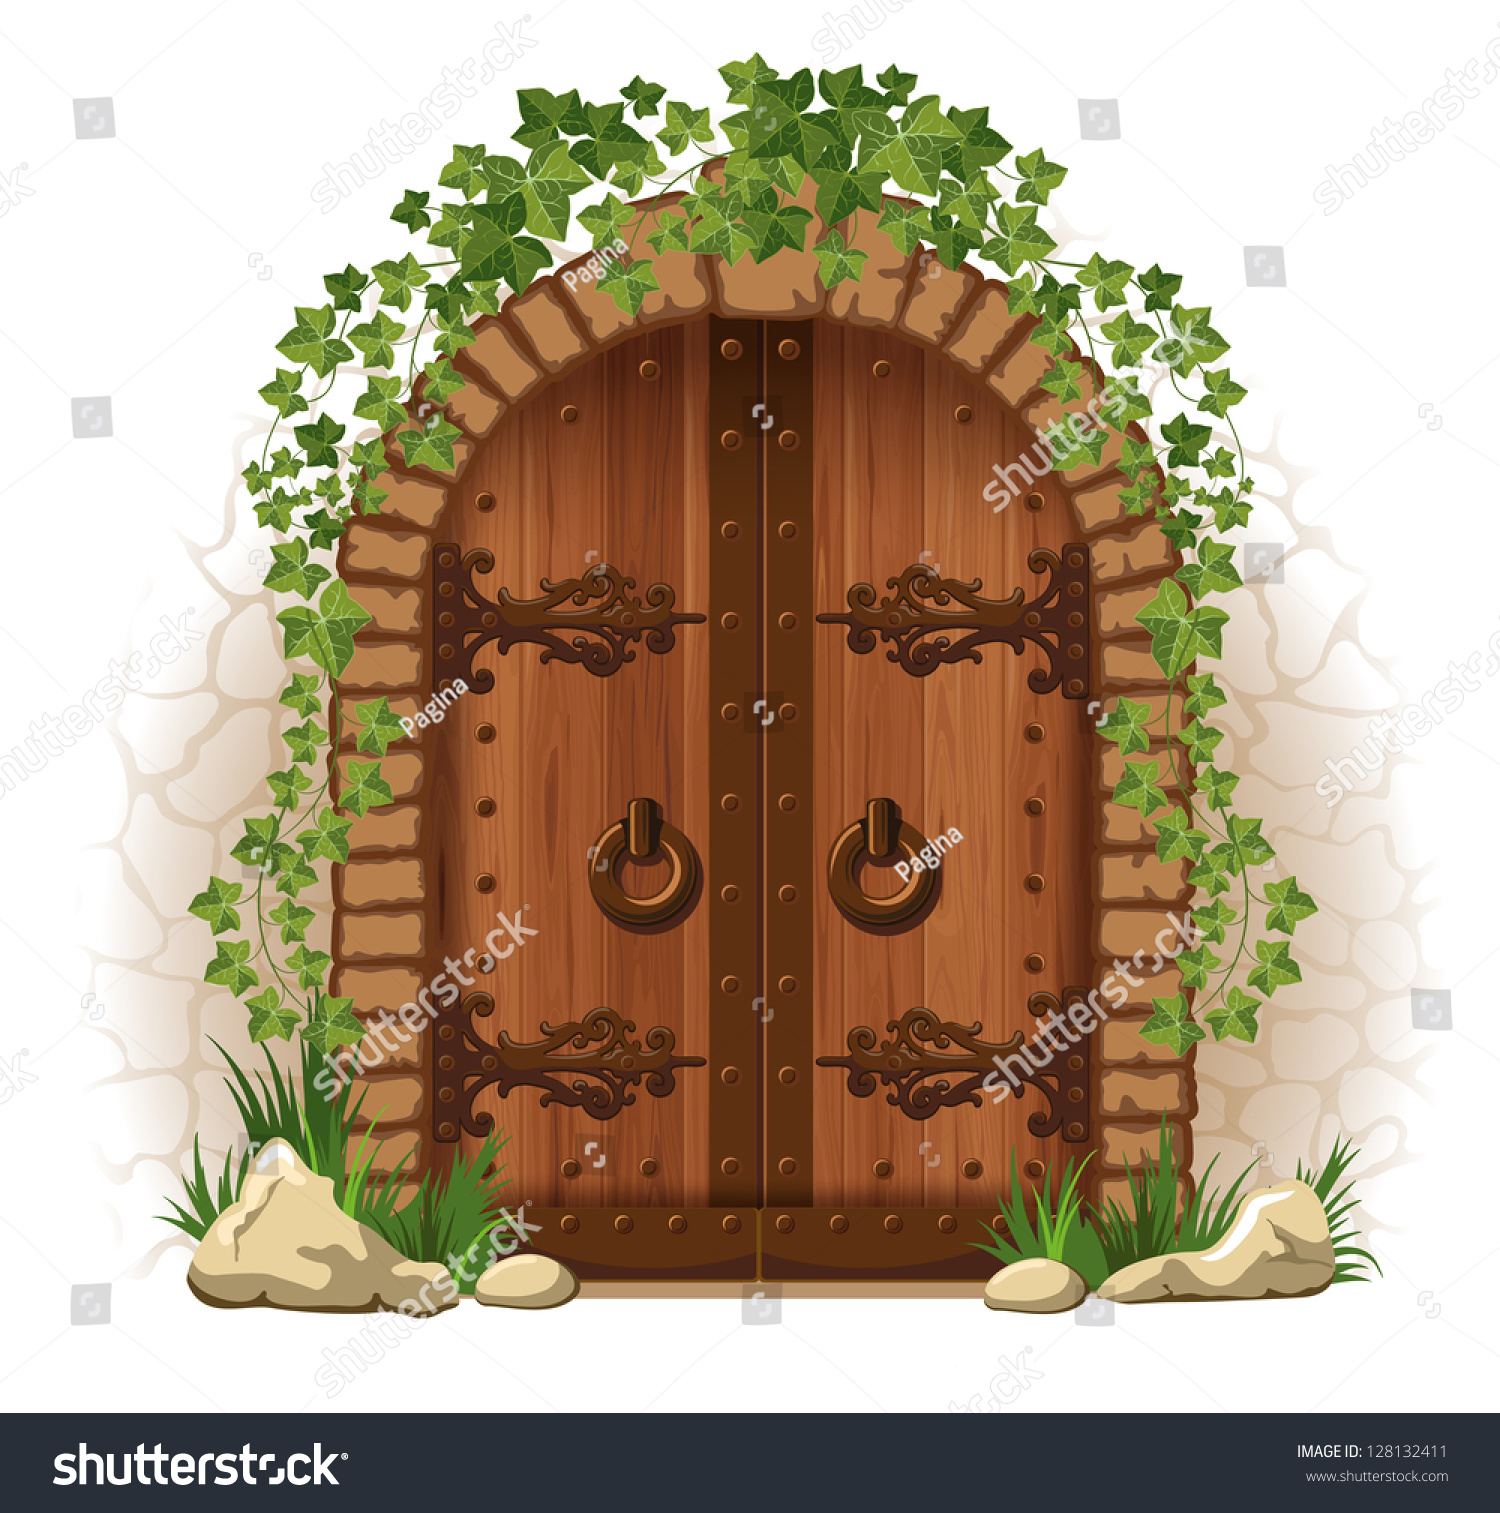 Arched Medieval Wooden Door Stone Wall Stock Vector